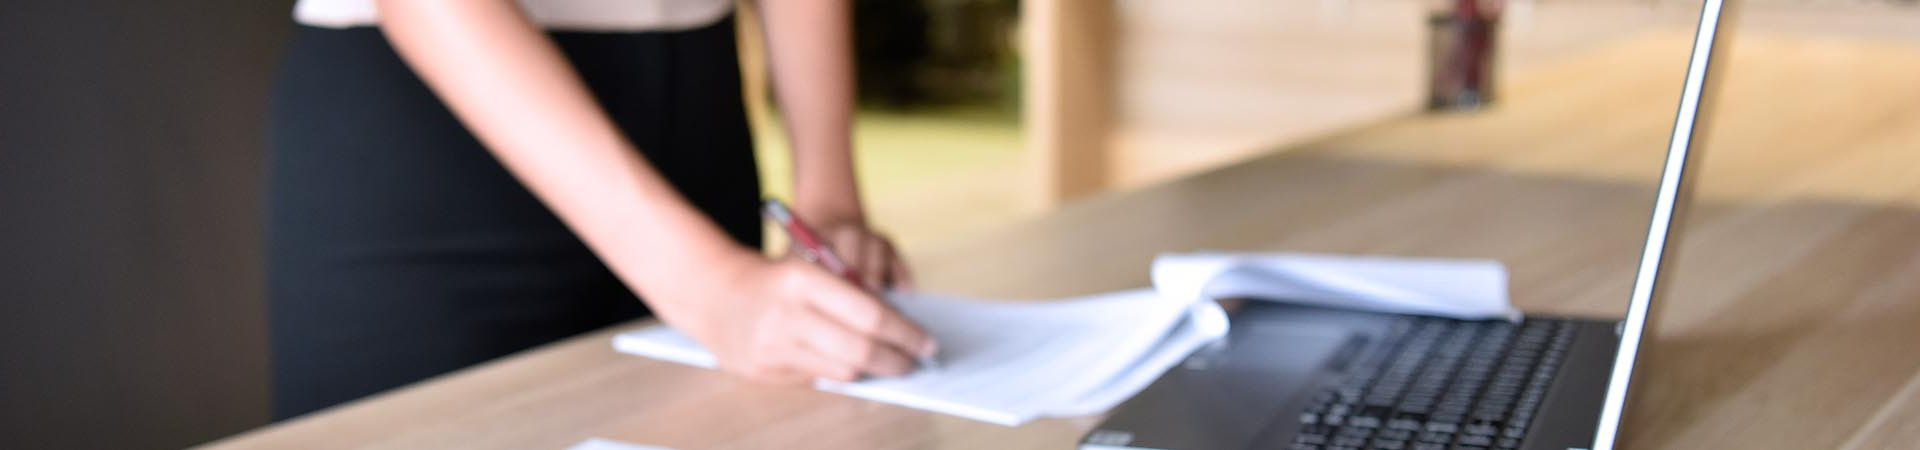 sigining-strata-by-laws-documents